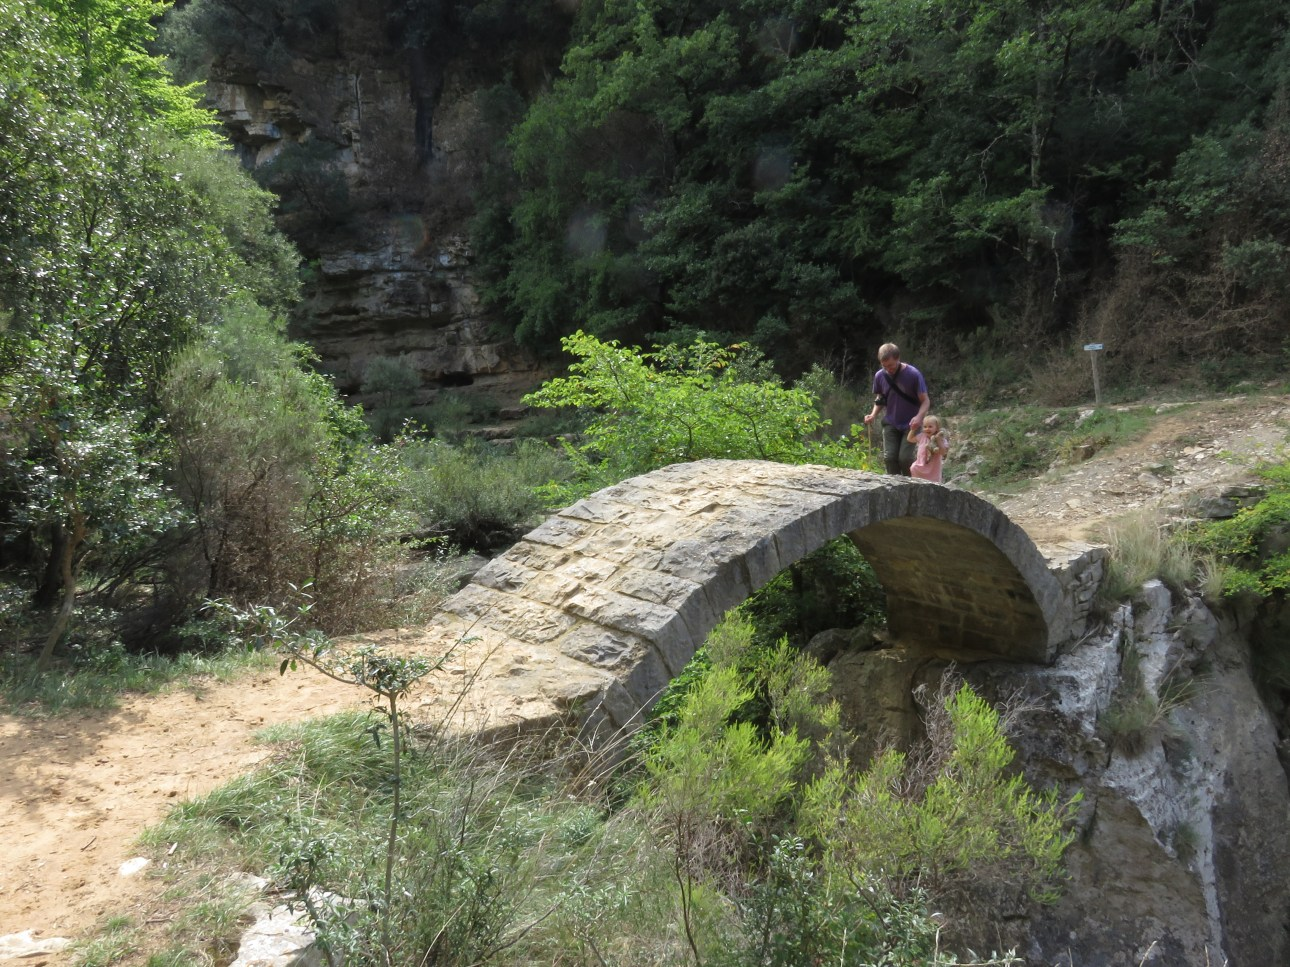 A small child in a pink dress holds a mans hand and crosses a small stone bridge over a ravine